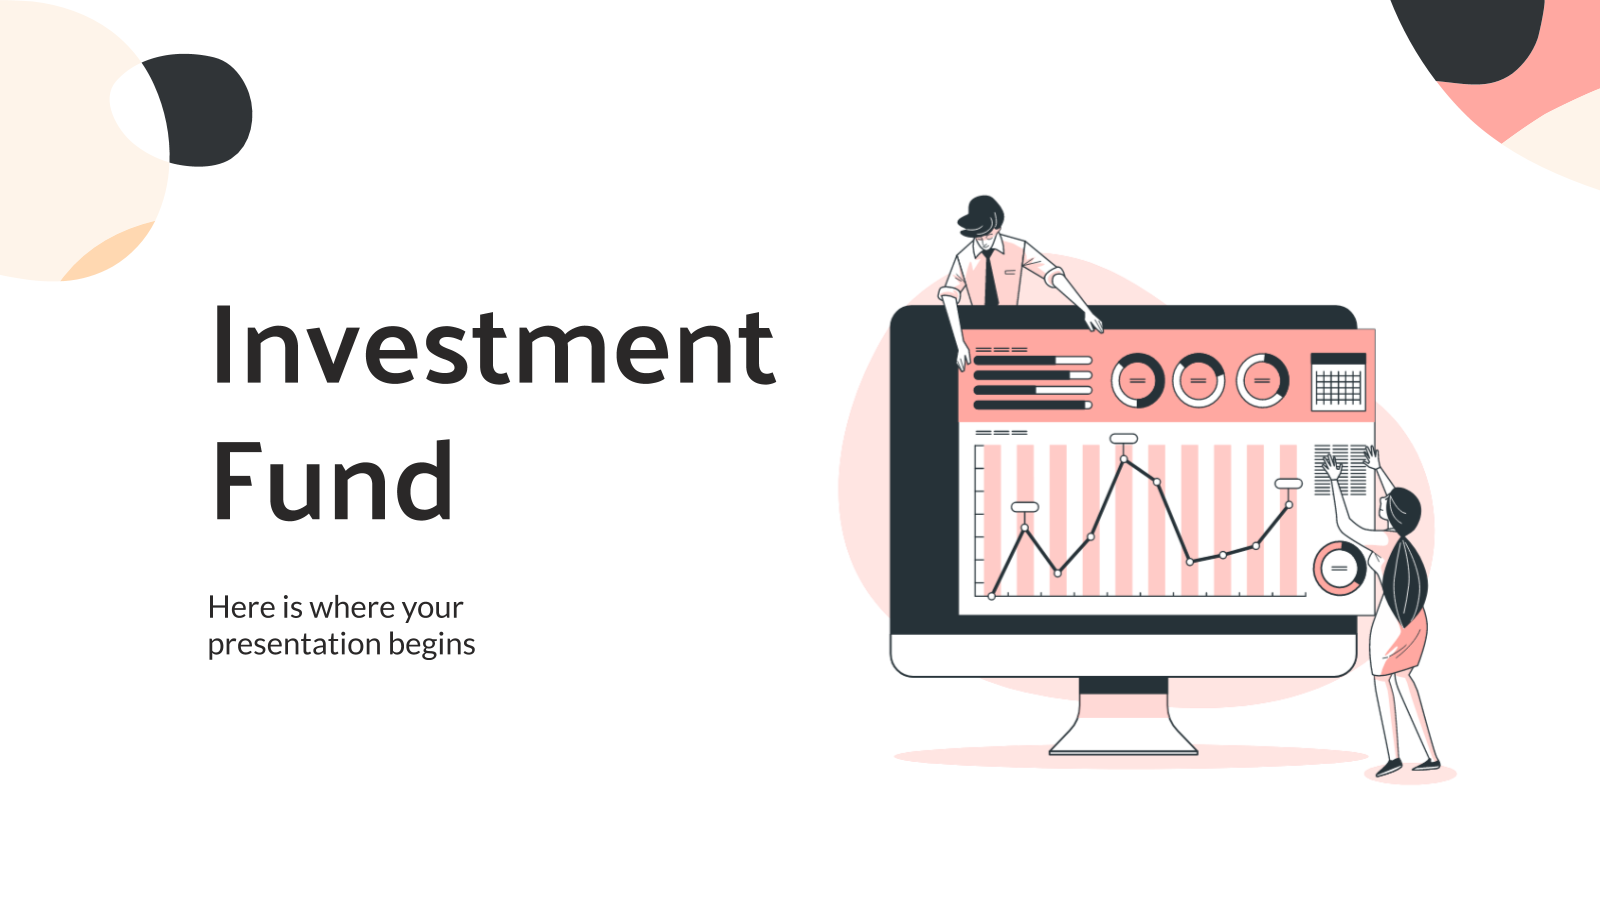 Investment Fund Company Profile presentation template